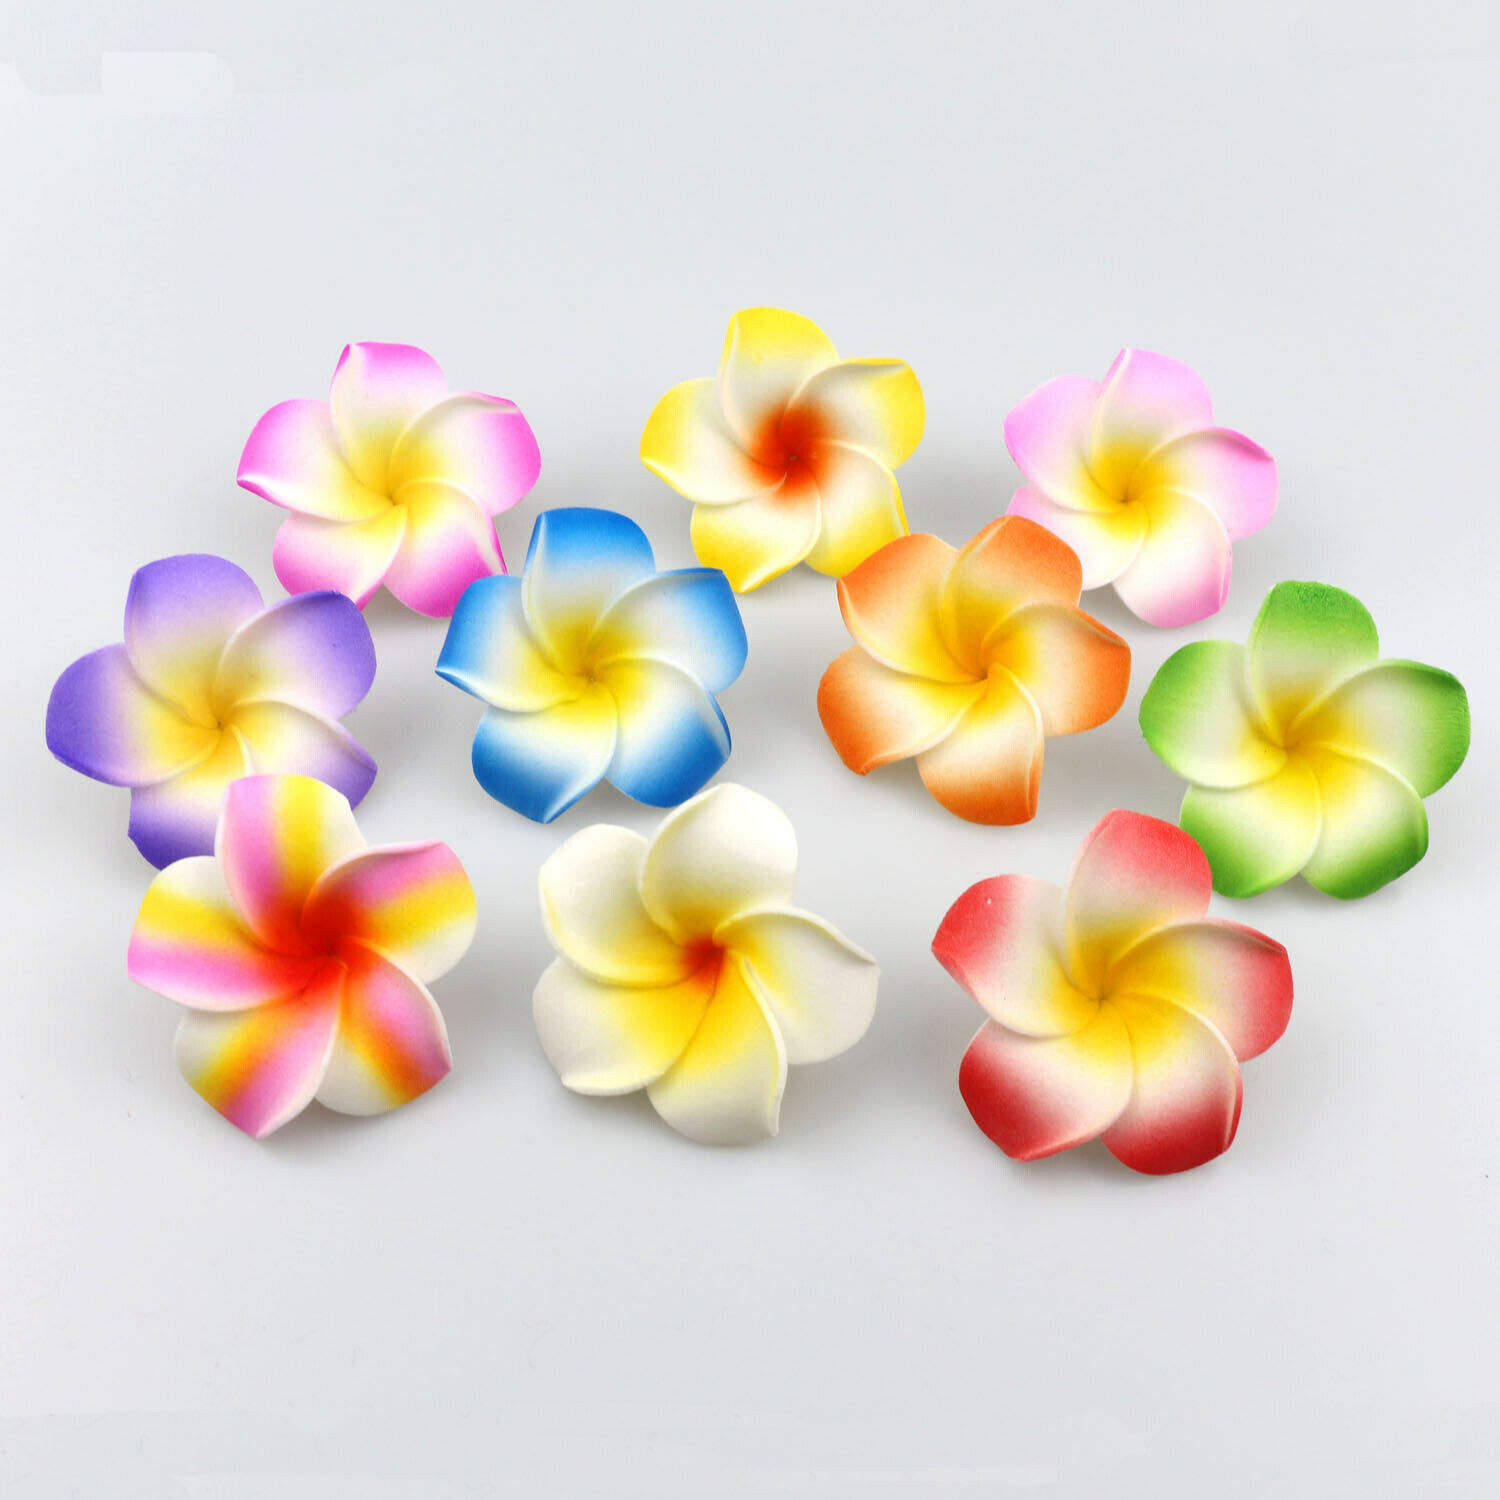 100 pcs/bag 5cm Artificial Foam Hawaiian Plumeria Frangipani Flower Head DIY Headwear hair clip Corsage flower